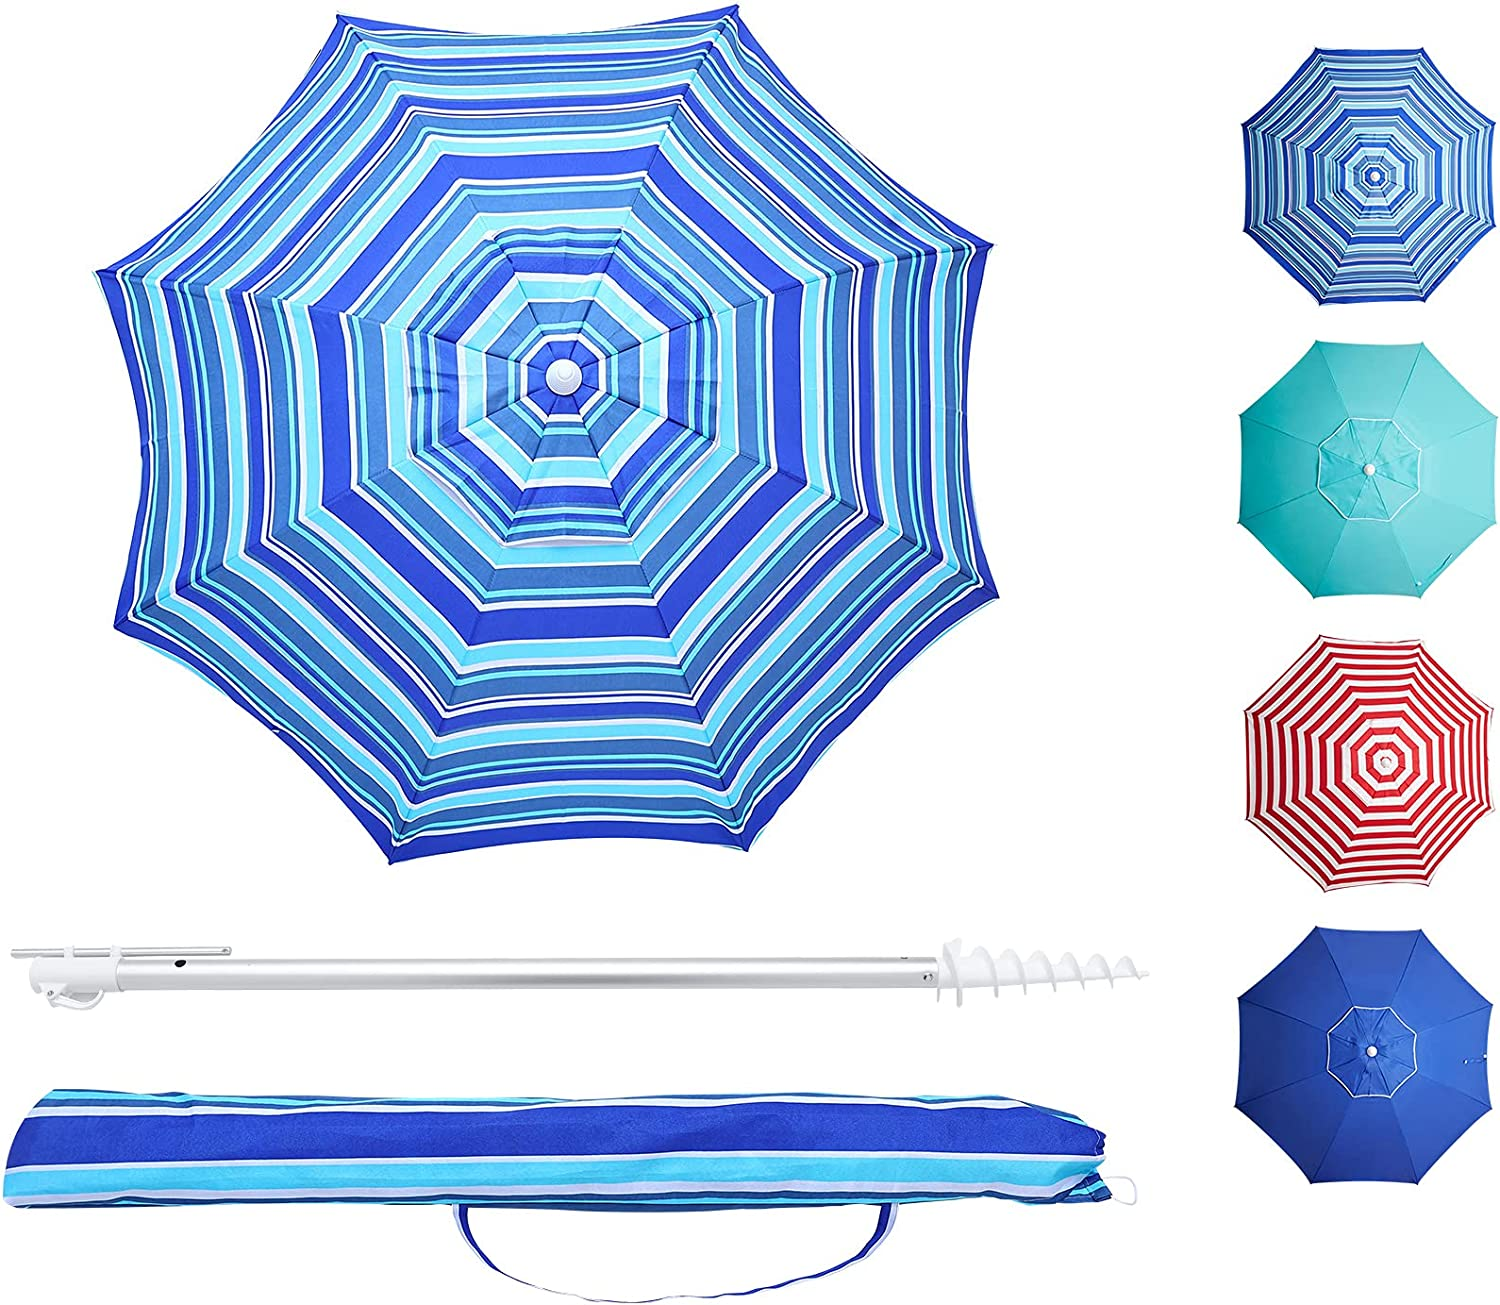 Meluvici Beach Umbrella 6.5ft Ancho for with Sand Manufacturer regenerated All stores are sold product